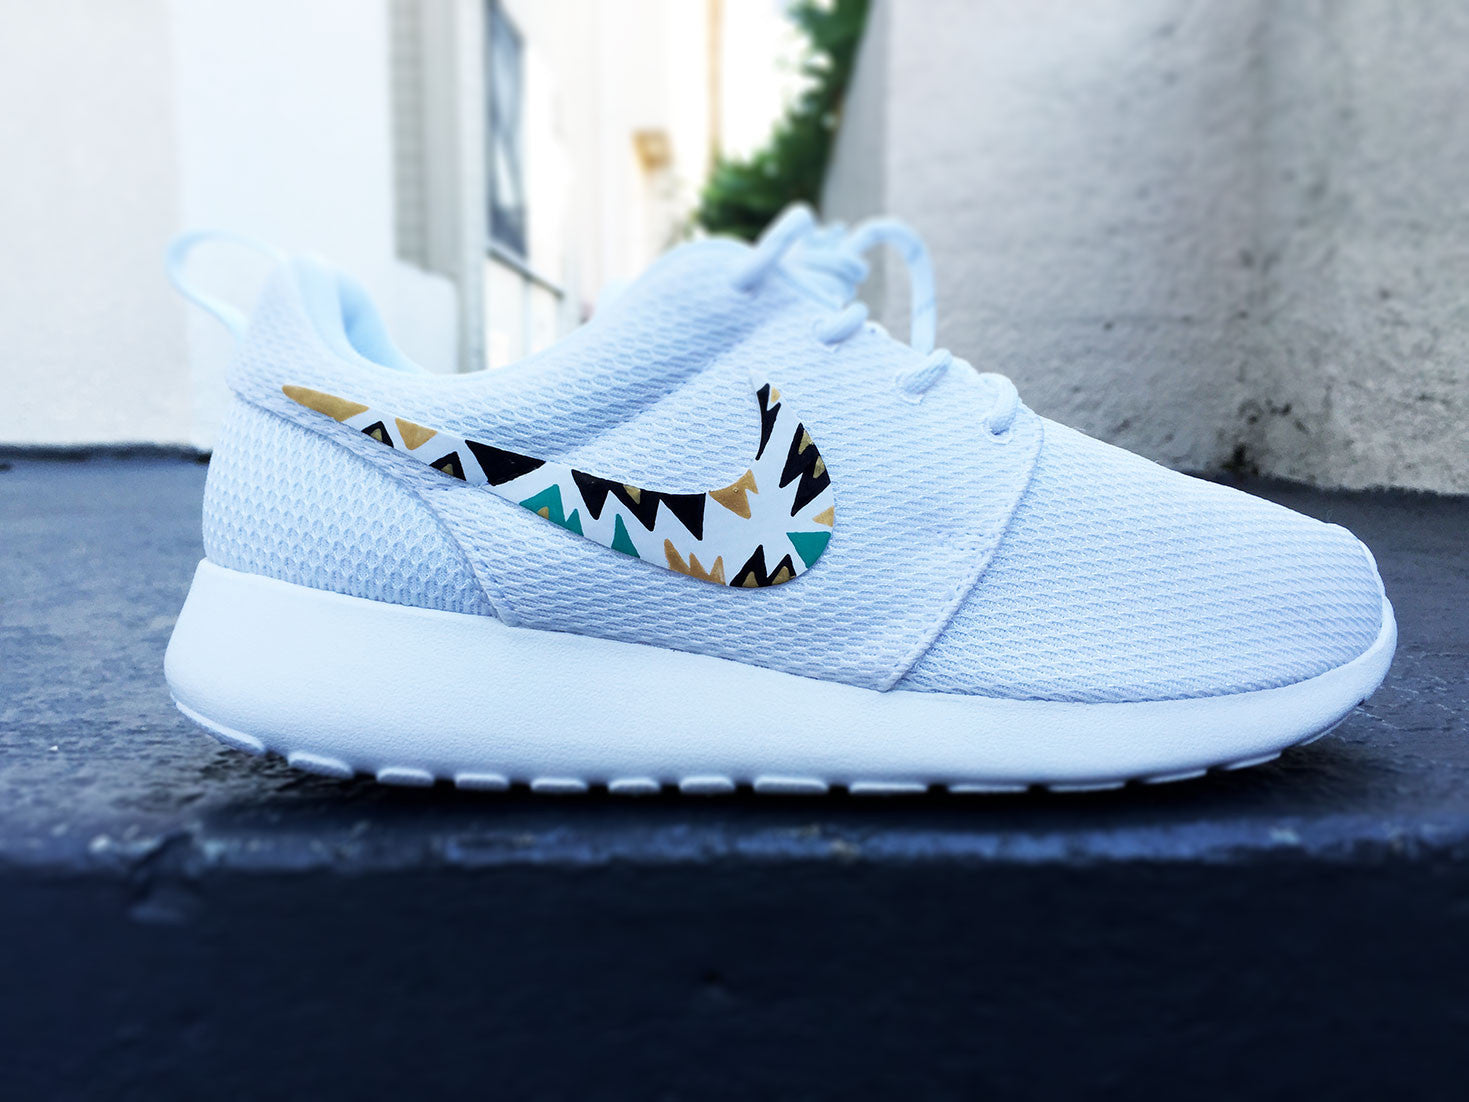 size 40 4a678 514ce ... Custom Nike Roshe Run sneakers for women, All white, Black and Gold, ...